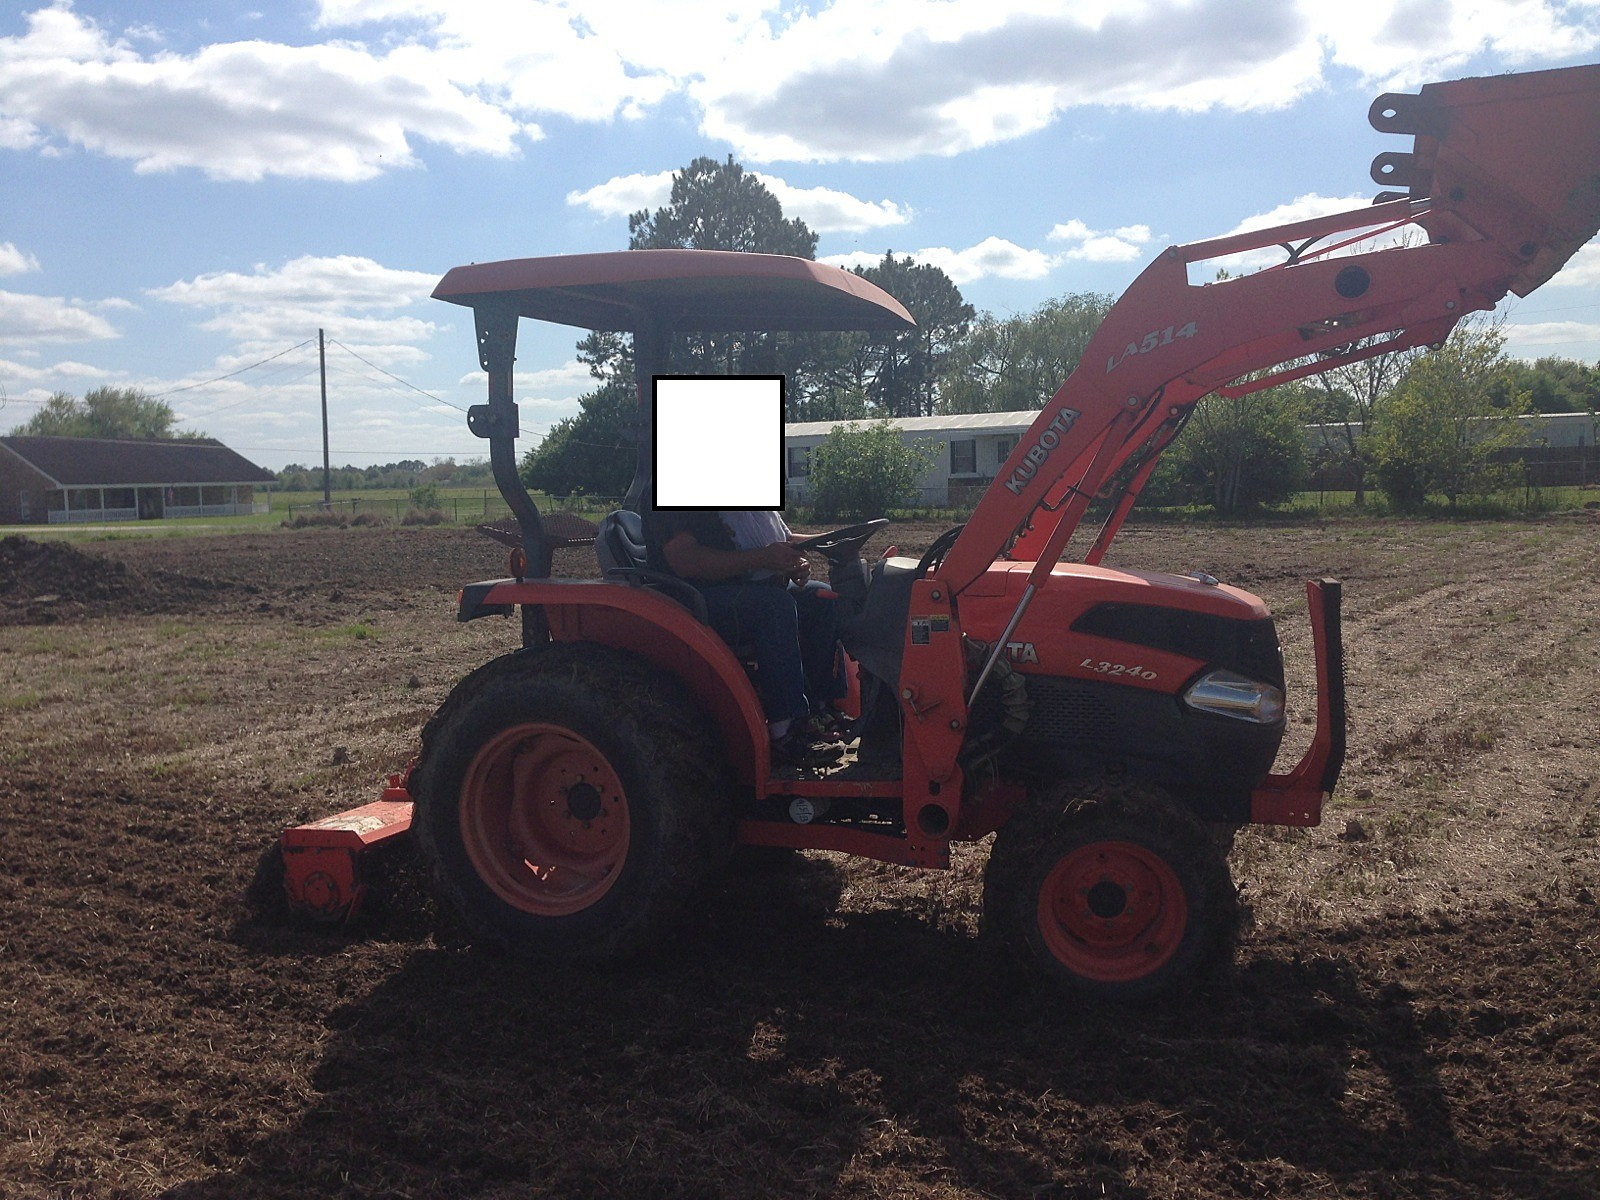 Stolen Tractor, Breaux Bridge Police